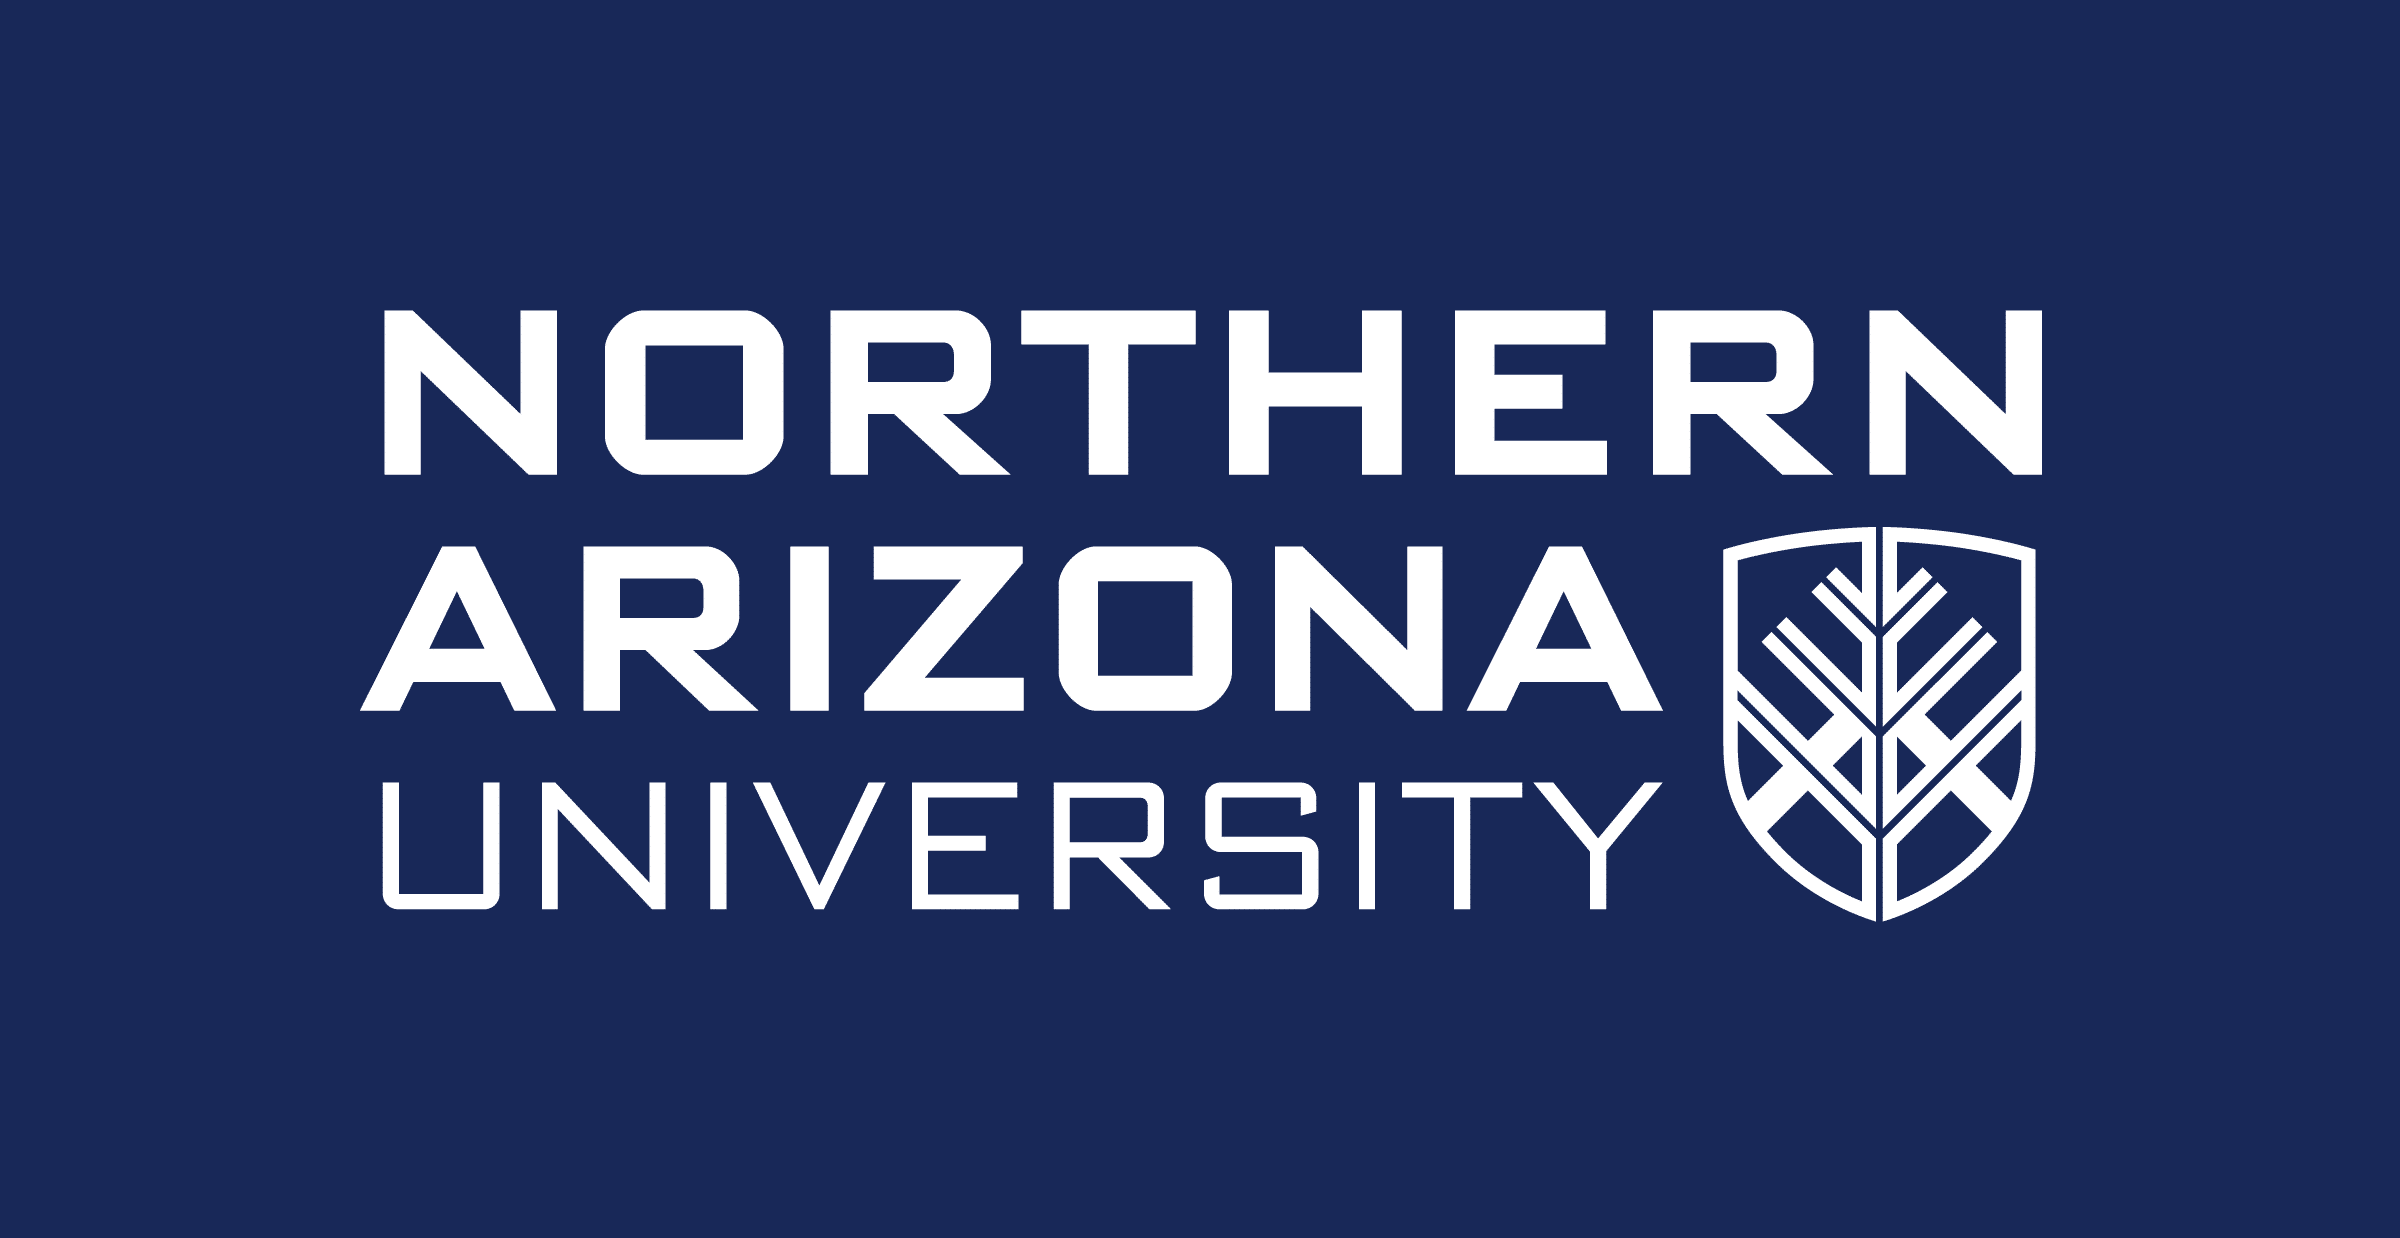 The Northern Arizona University primary logo with each work stacked on the other vertically and the N A U shield appearing at the bottom right. The text is white over a blue background.